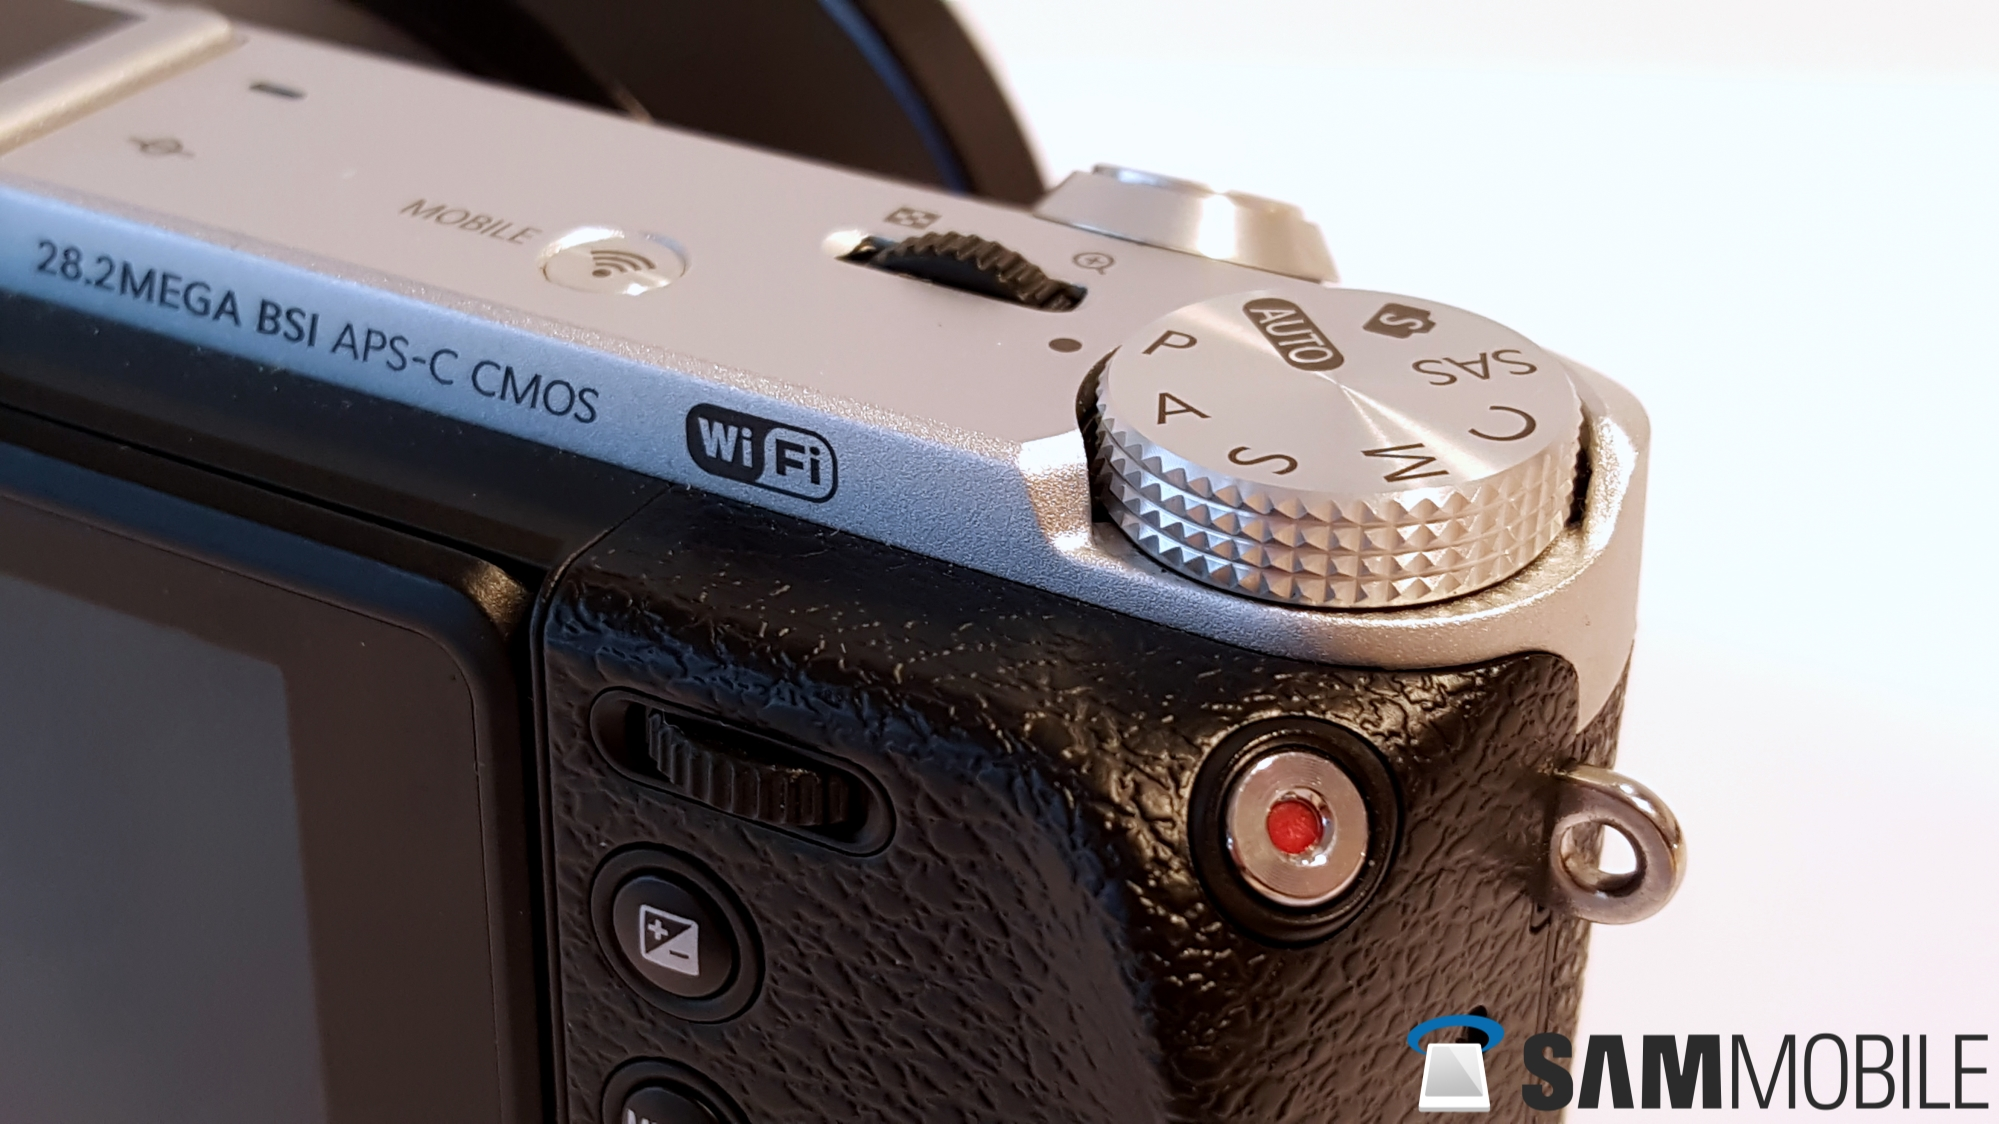 Samsung NX500 review: the best affordable system camera